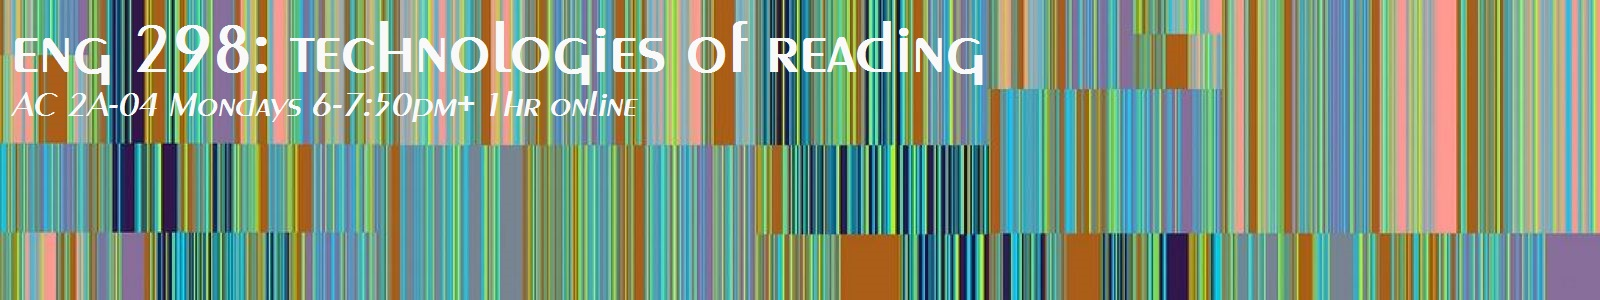 ENG 298: Technologies of Reading